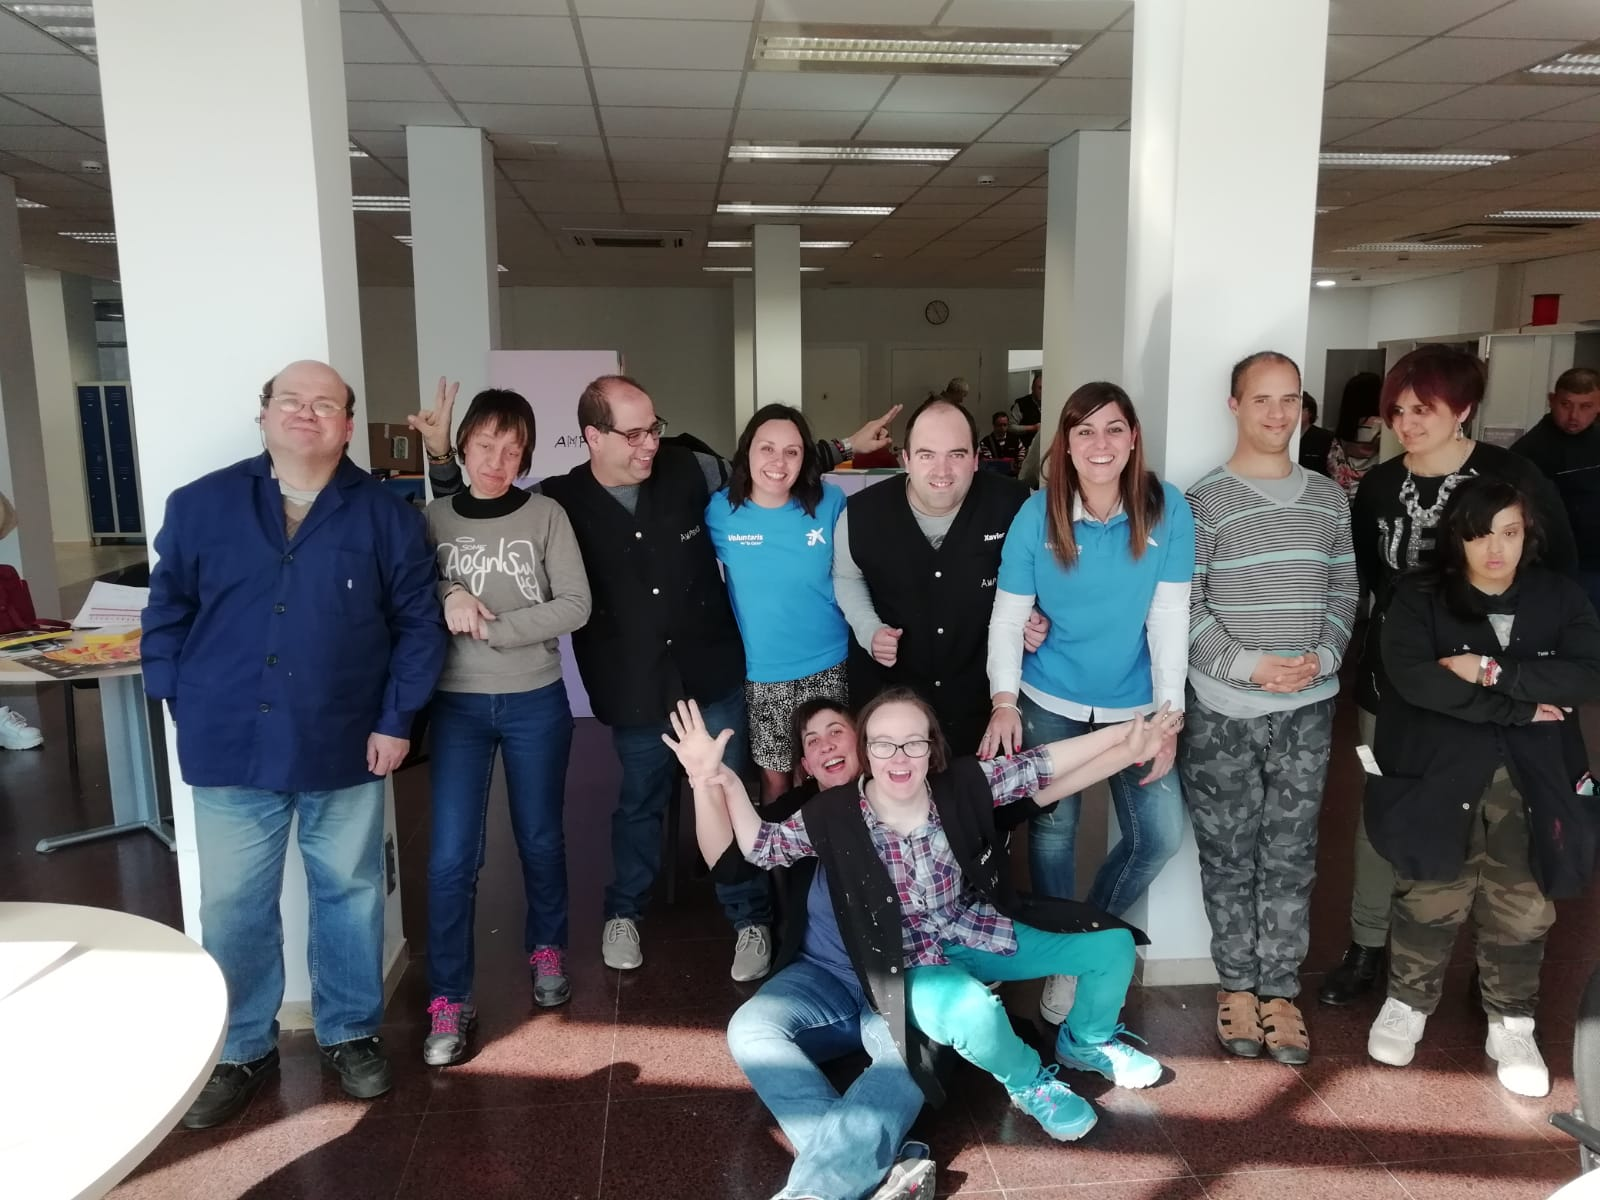 VOLUNTARIS LA CAIXA 5 - CO BASES